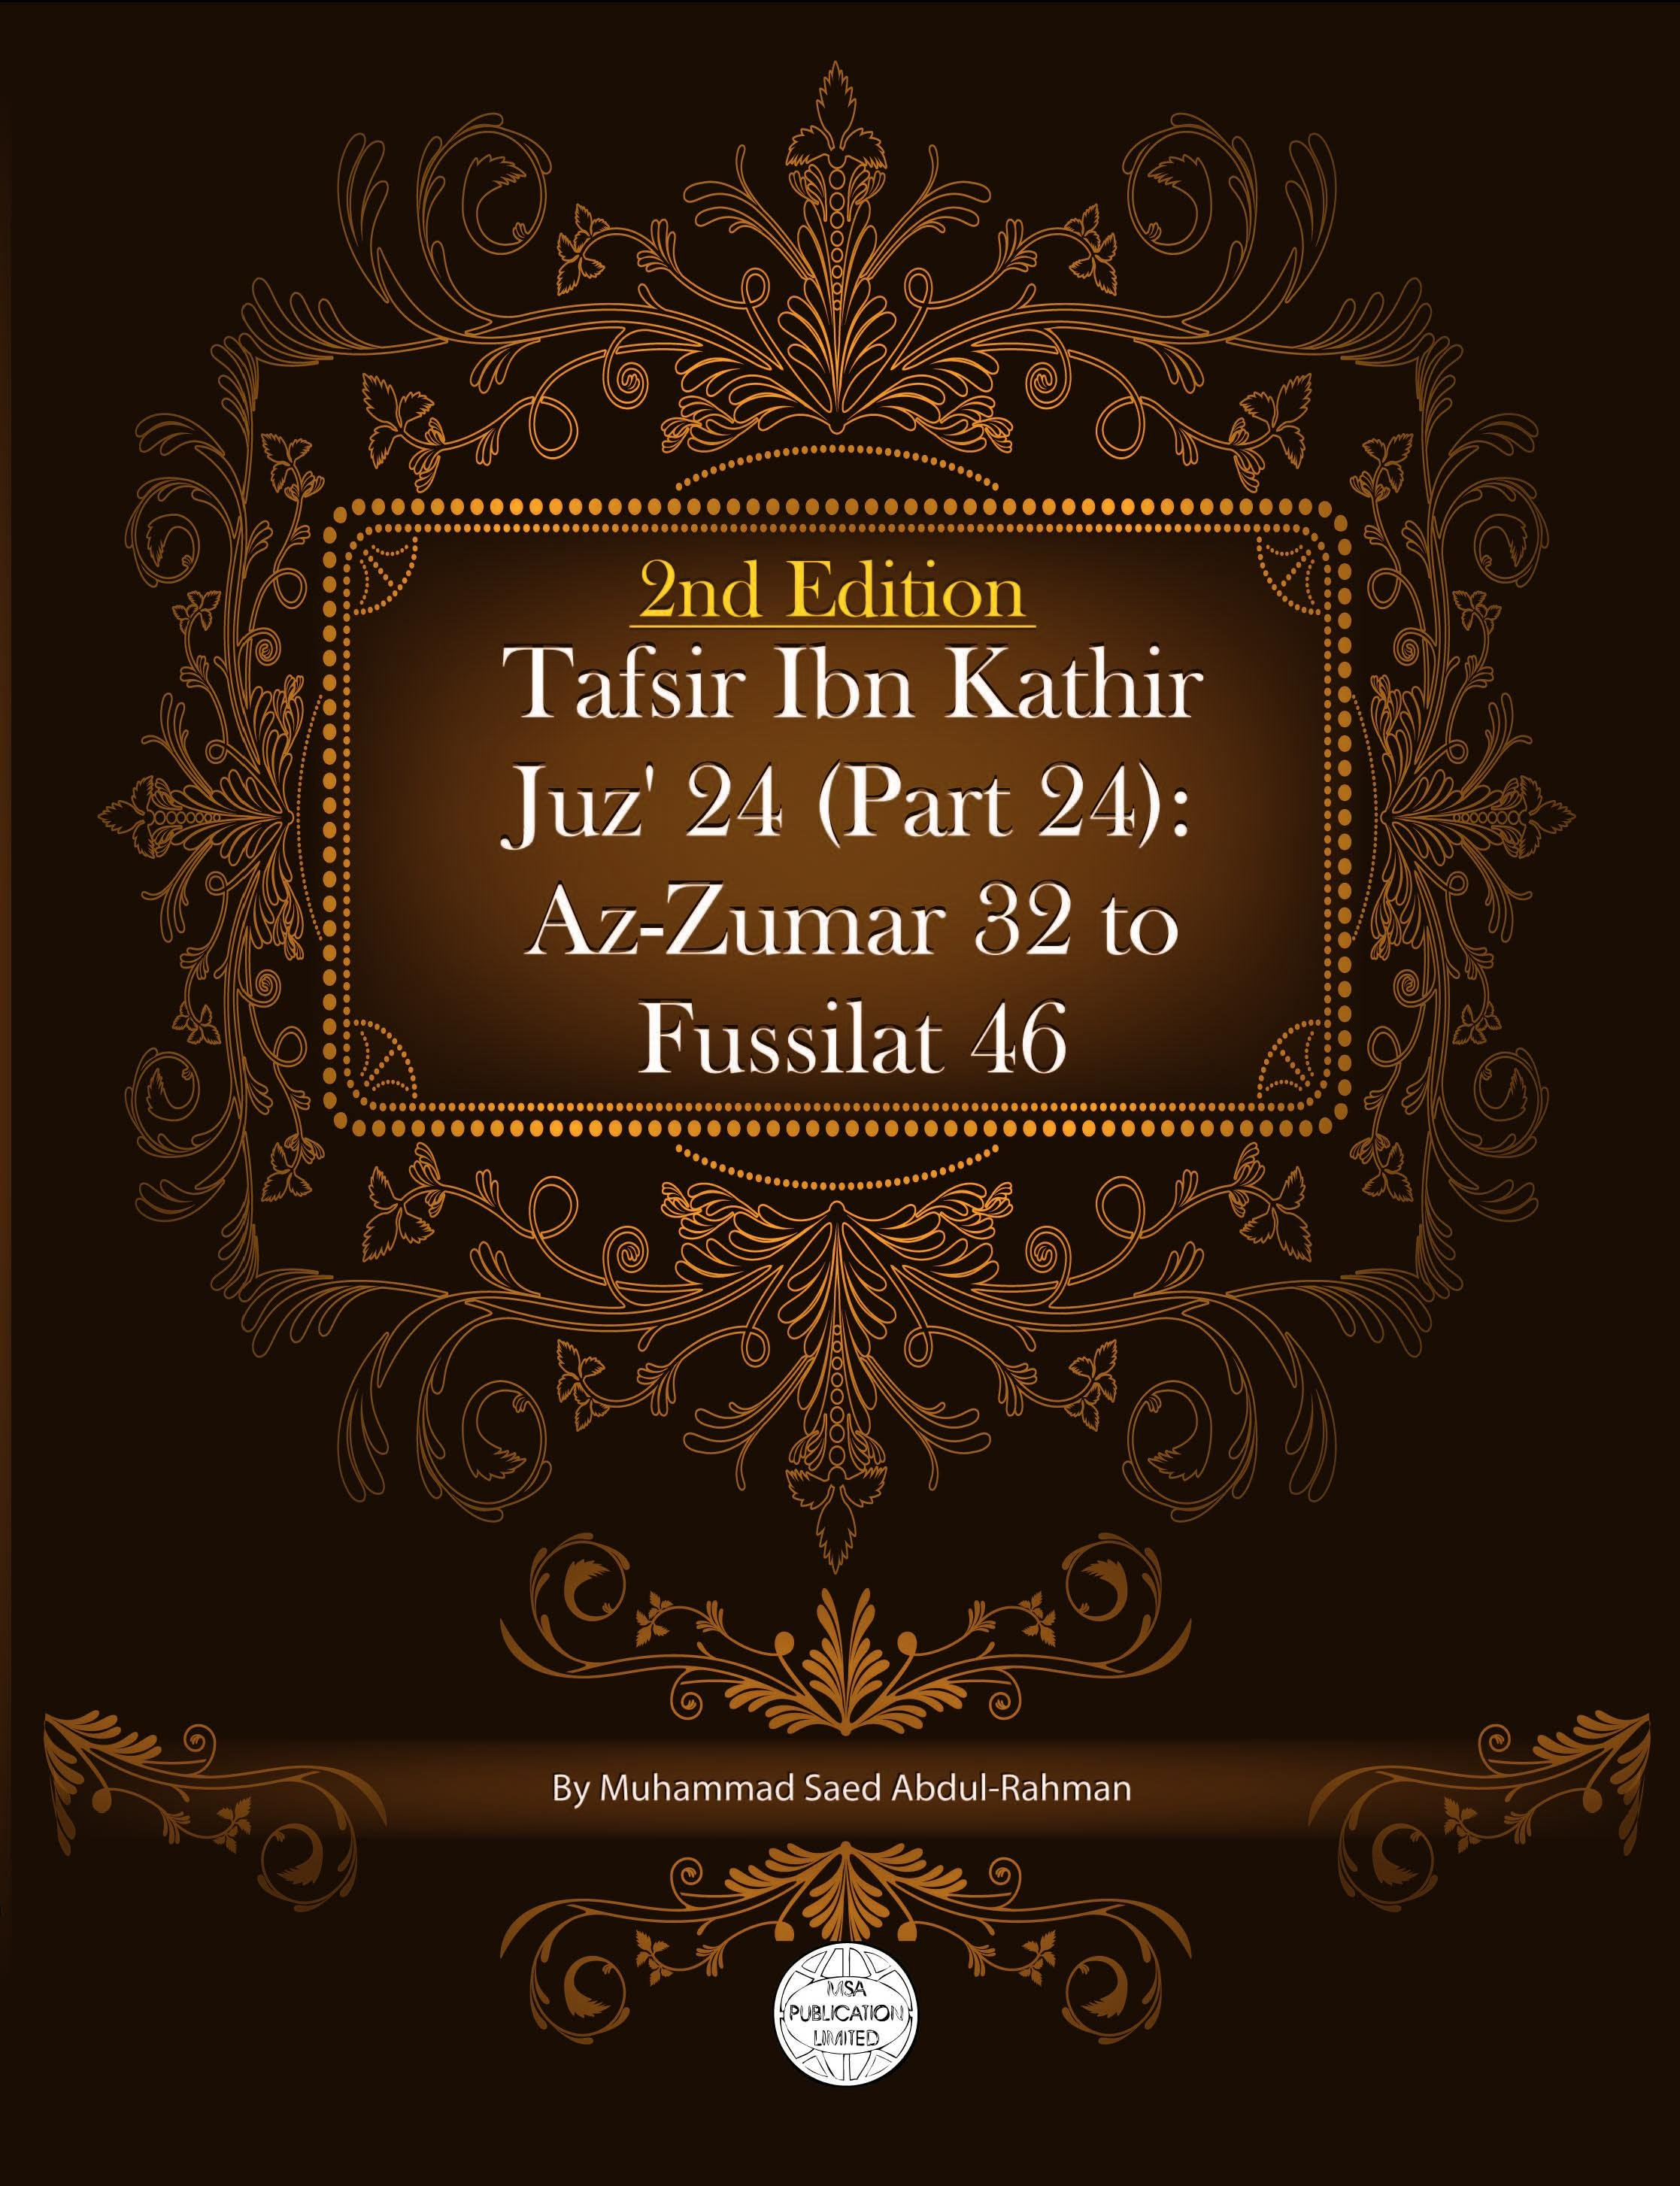 Tafsir Ibn Kathir Juz' 24 (Part 24): Az-Zumar 32 To Fussilat 46 2nd Edition